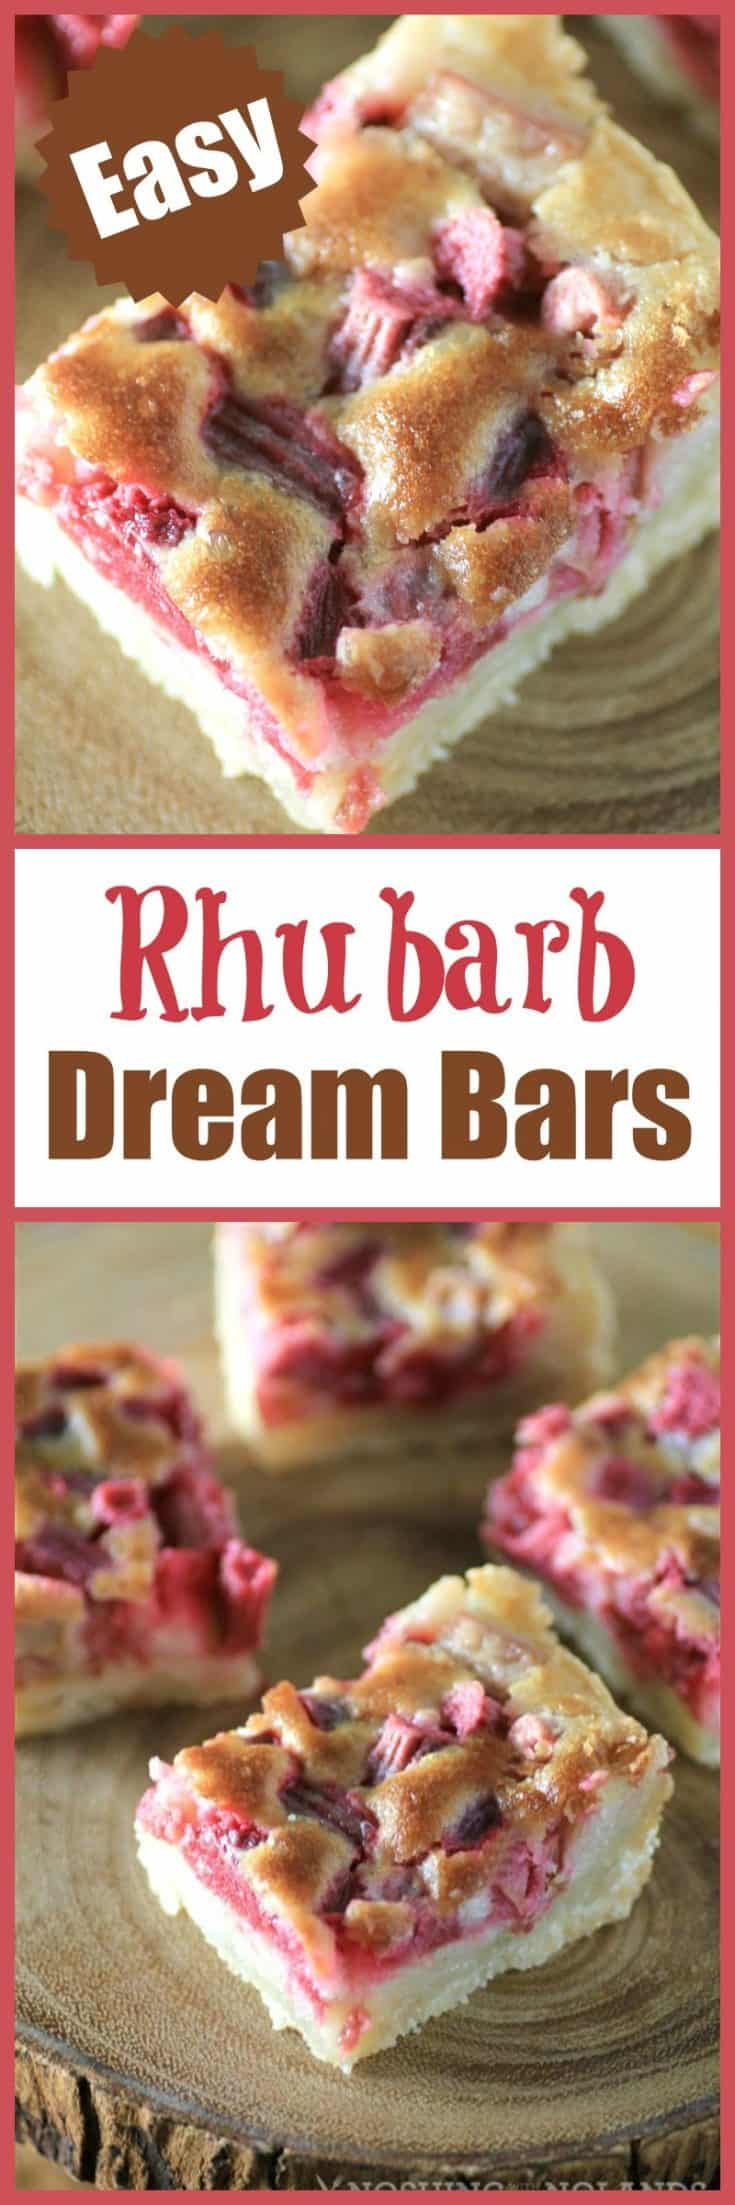 These Rhubarb Dream Bars are sure to be a hit with family and friends and are a perfect treat for spring and summer! #rhubarb #dreambars